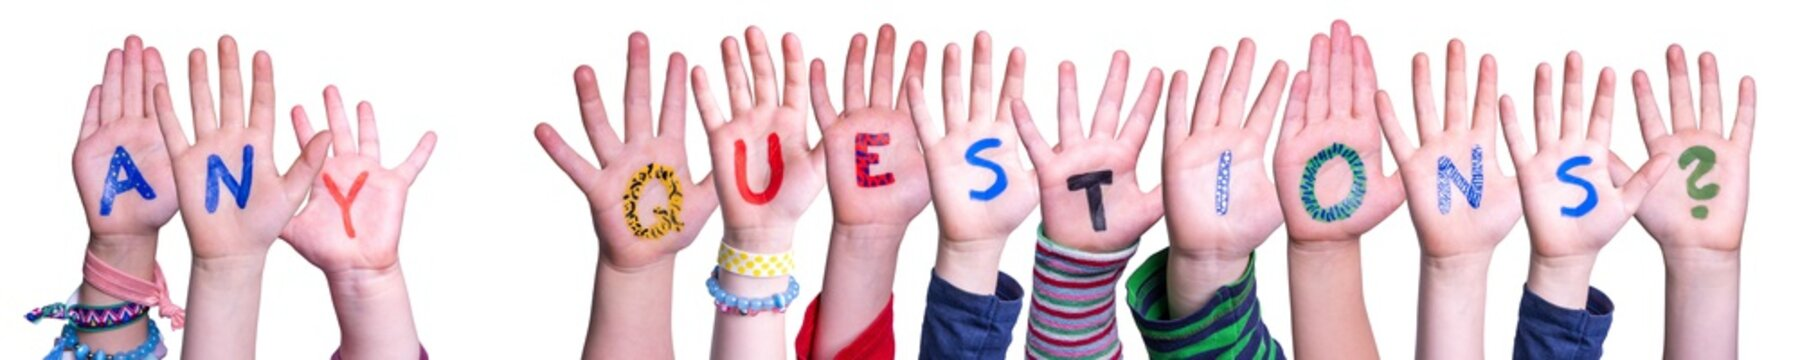 Children Hands Building Colorful Word Any Questions. White Isolated Background